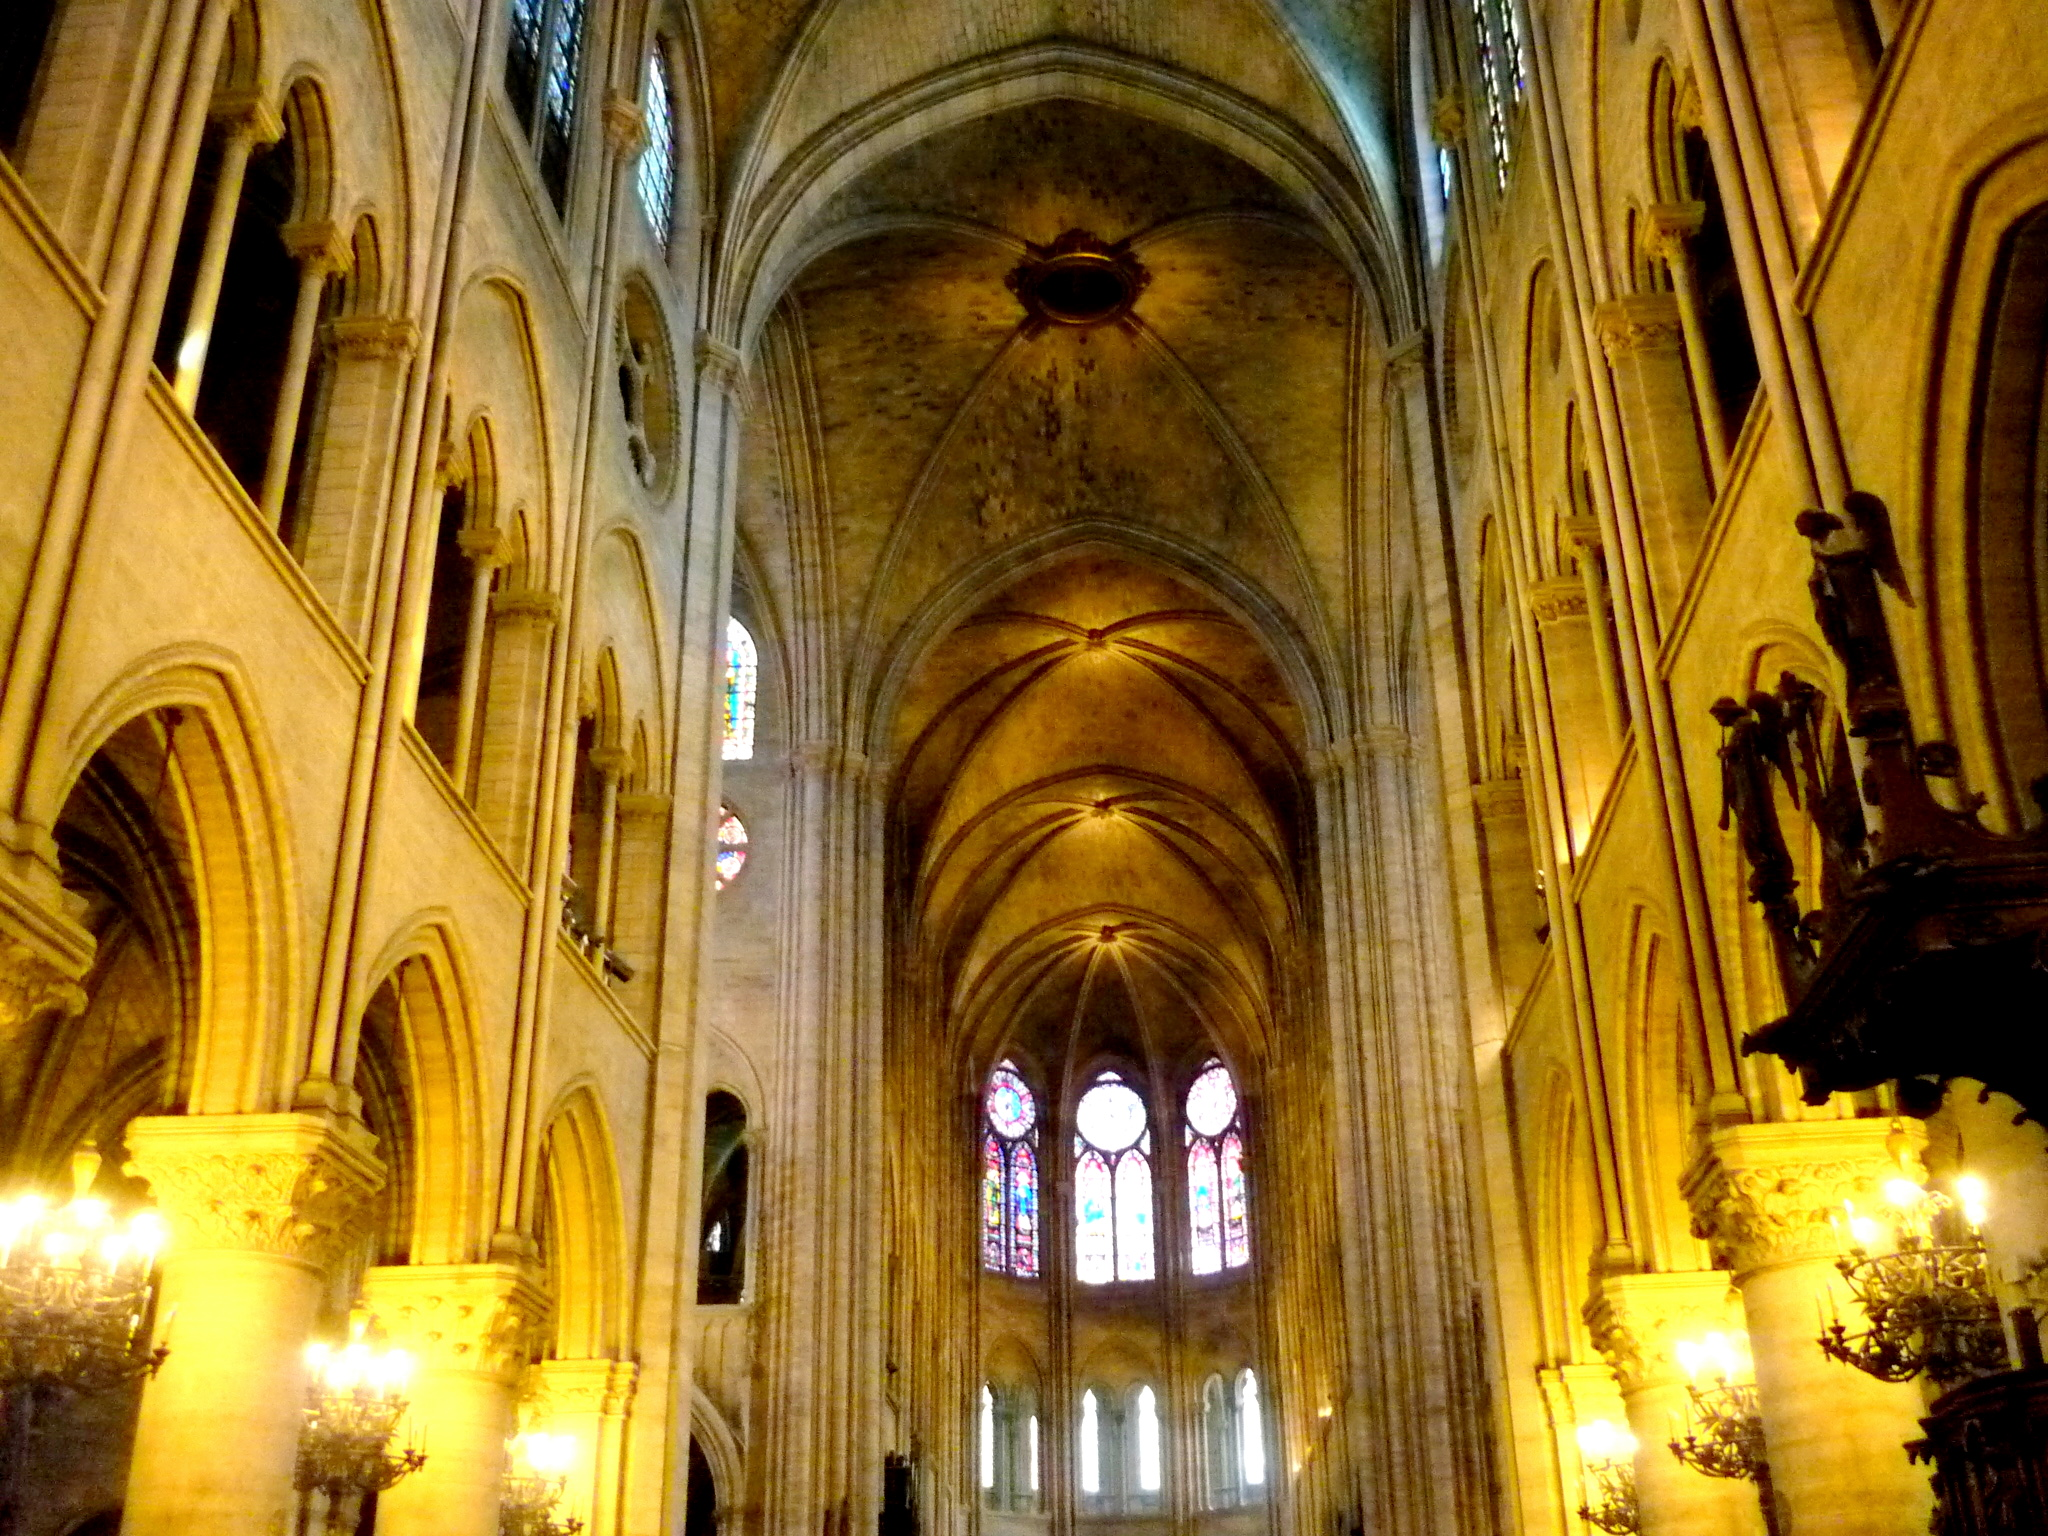 Visite de notre dame de paris french moments blog for Photo en interieur